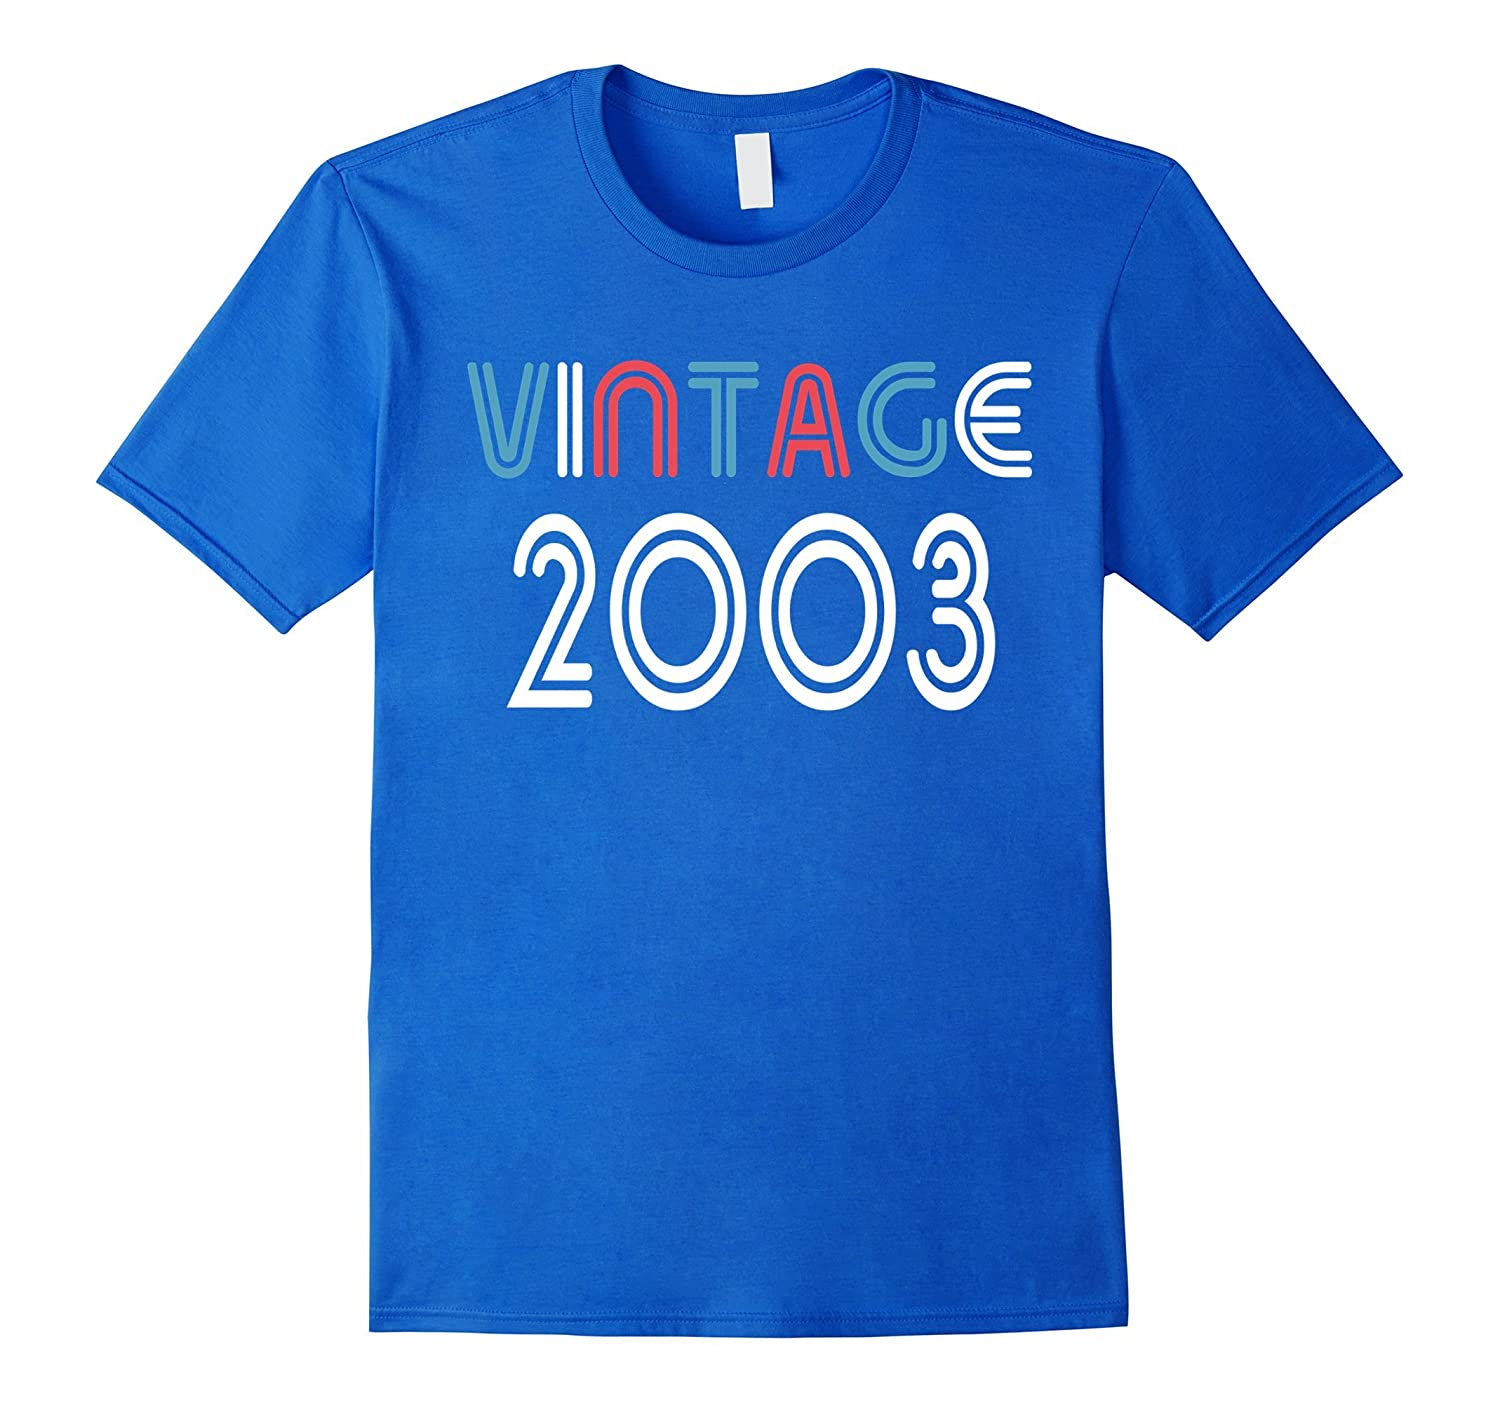 Vintage 2003 Shirt Funny 14 Years Old 14th Birthday Gift ANZ